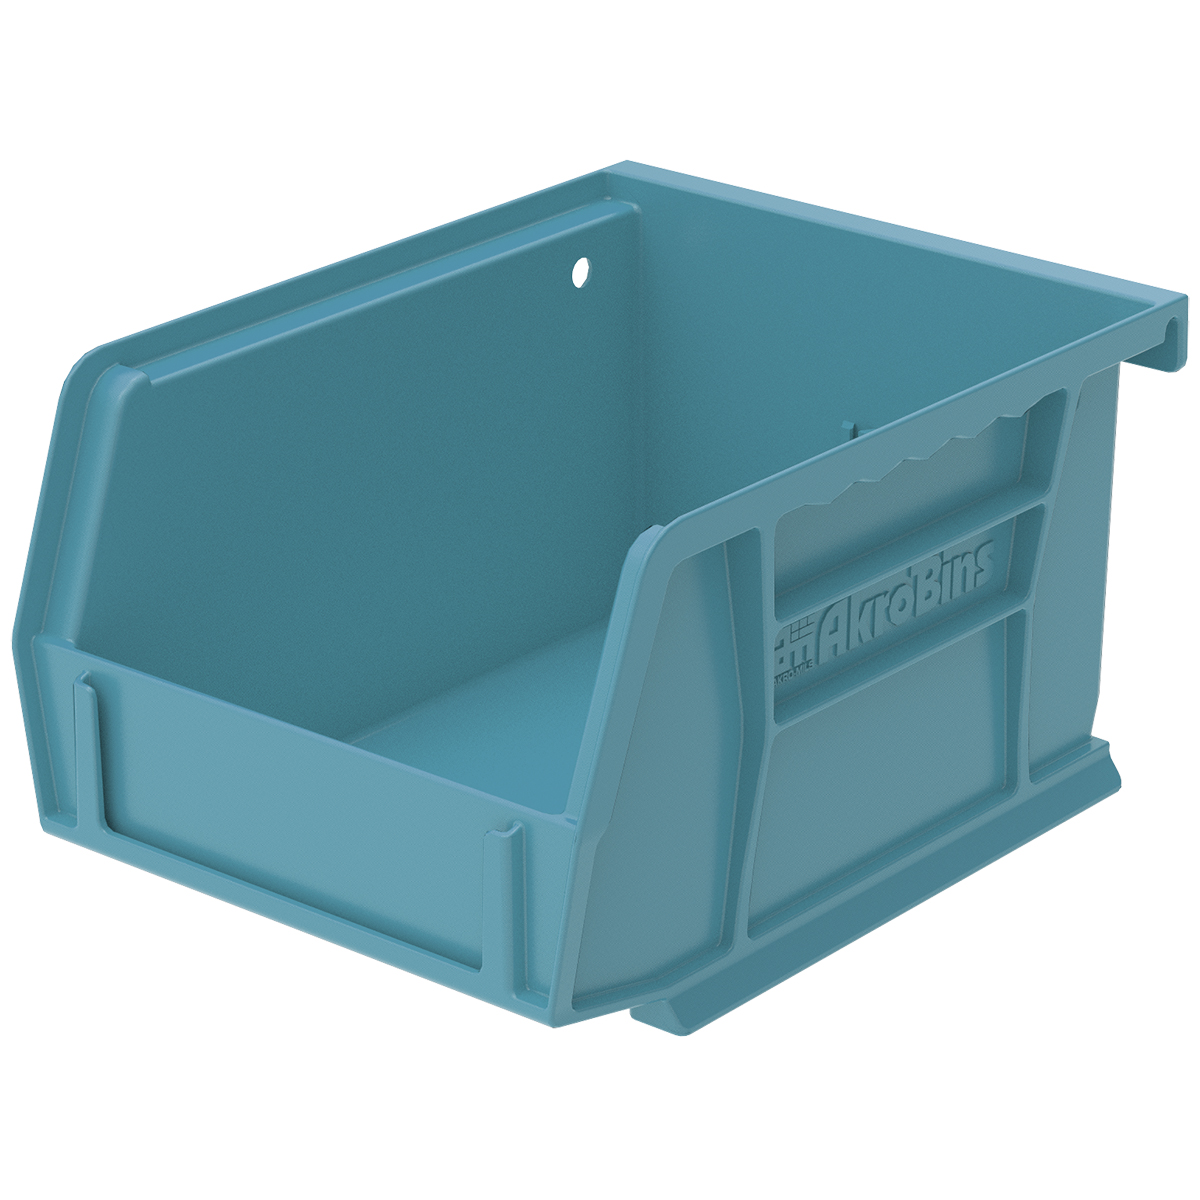 AkroBin 5-3/8 x 4-1/8 x 3, Light Blue (30210LTBLU).  This item sold in carton quantities of 24.